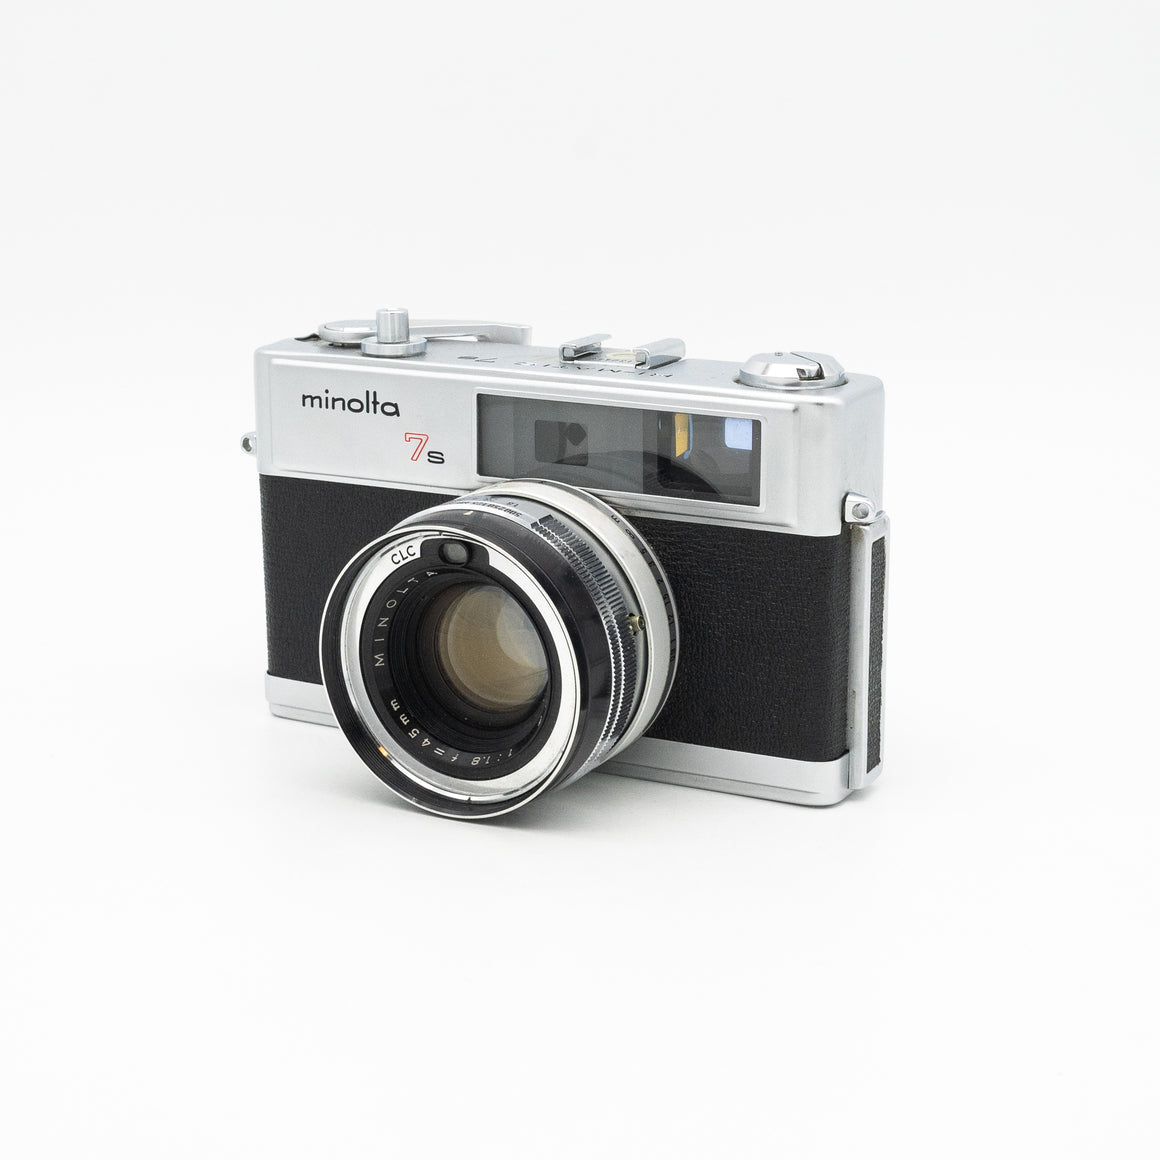 Minolta Hi-Matic 7s Rangefinder Camera with 45mm f/1.8 Lens